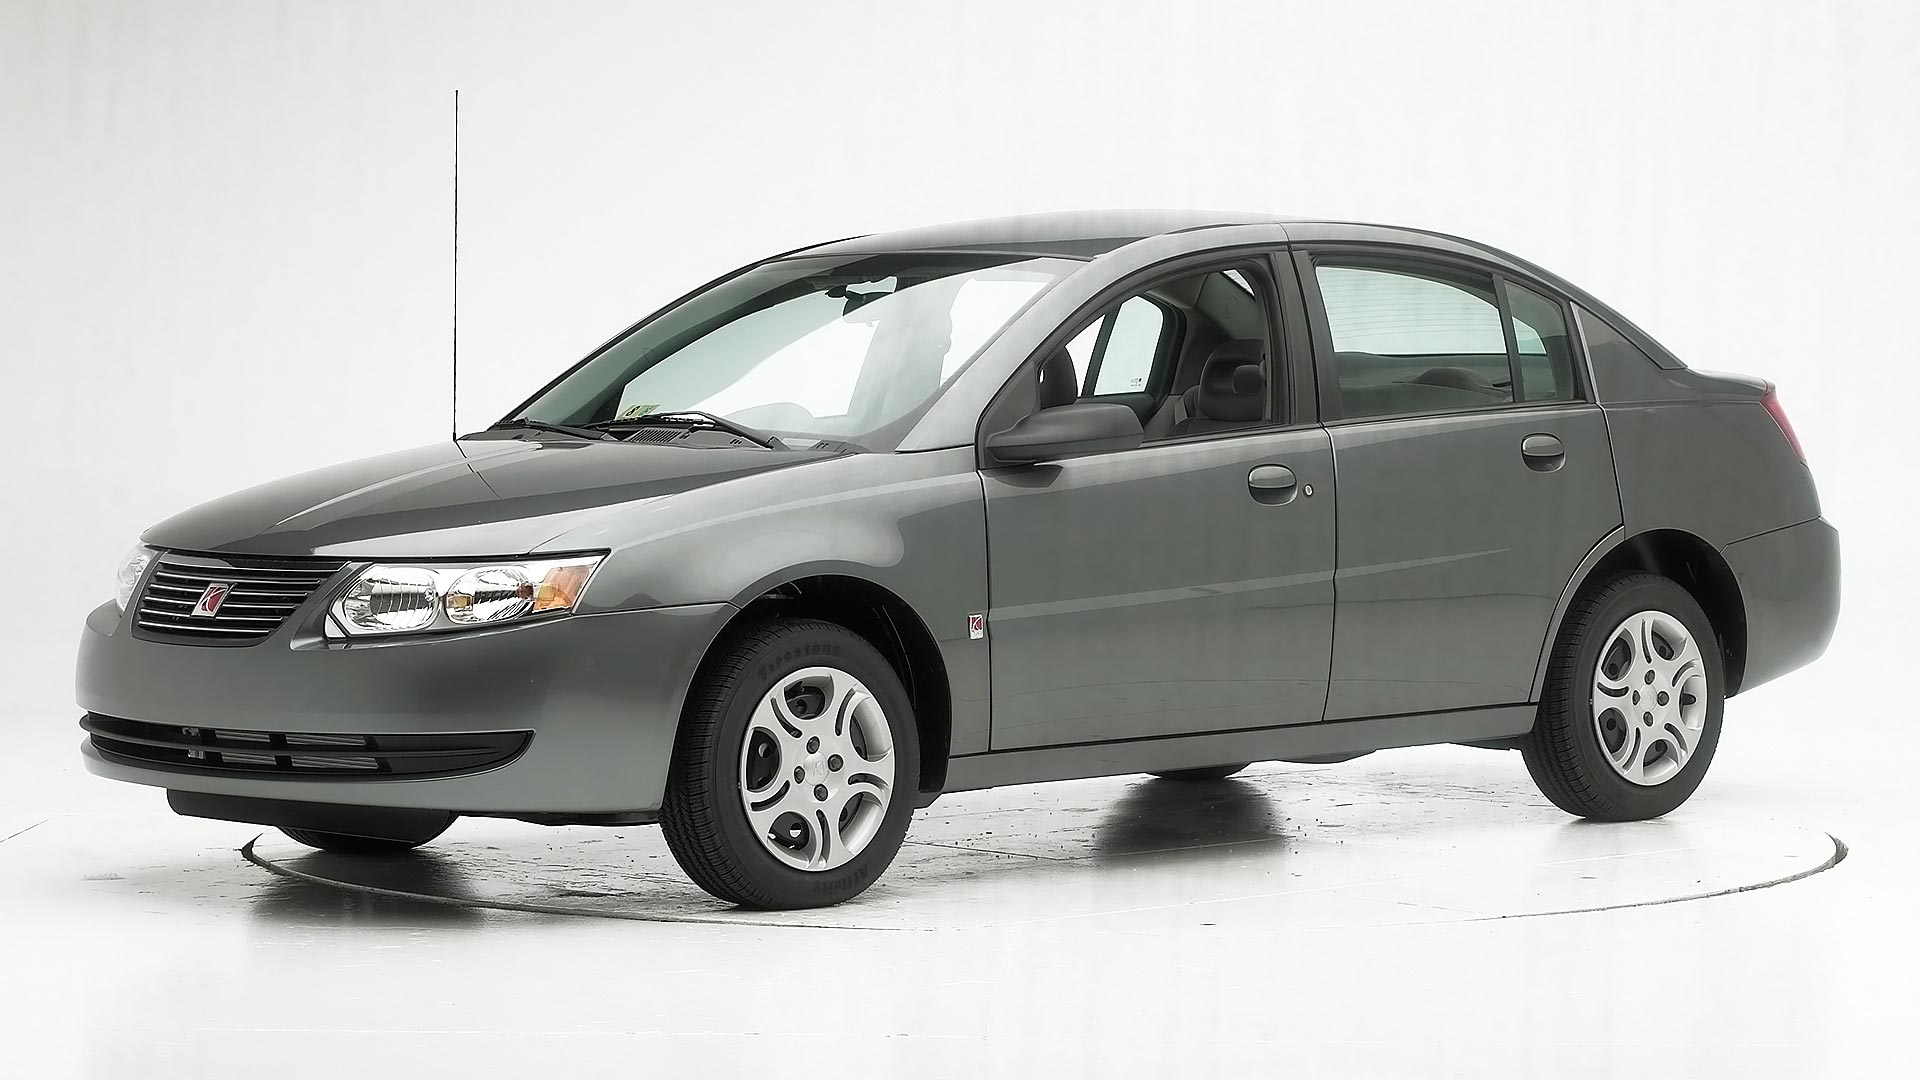 2005 Saturn ION 4-door sedan